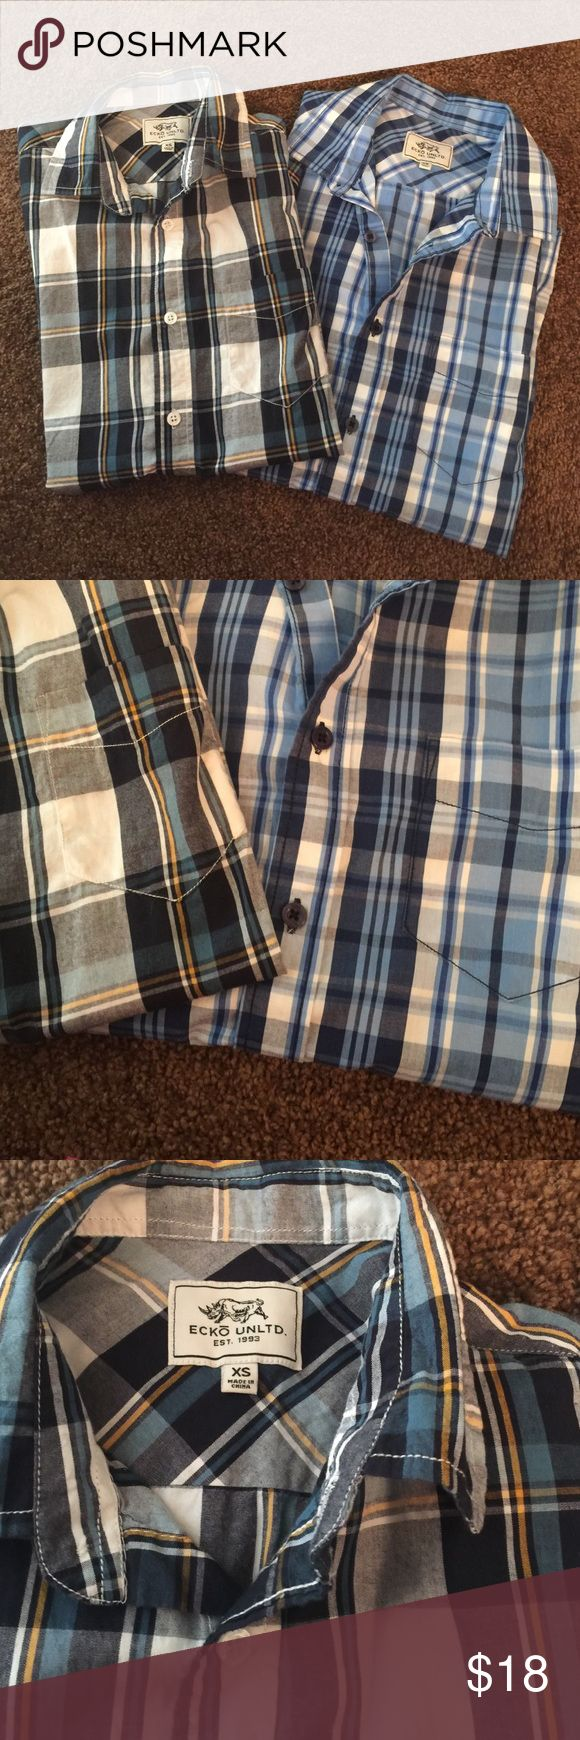 Echo Unltd. Mens plaid shirts Two for the price of one🔥🔥never worn! Short sleeve ... 2 for 18 🎉🎉🎉 Ecko Unlimited Shirts Casual Button Down Shirts